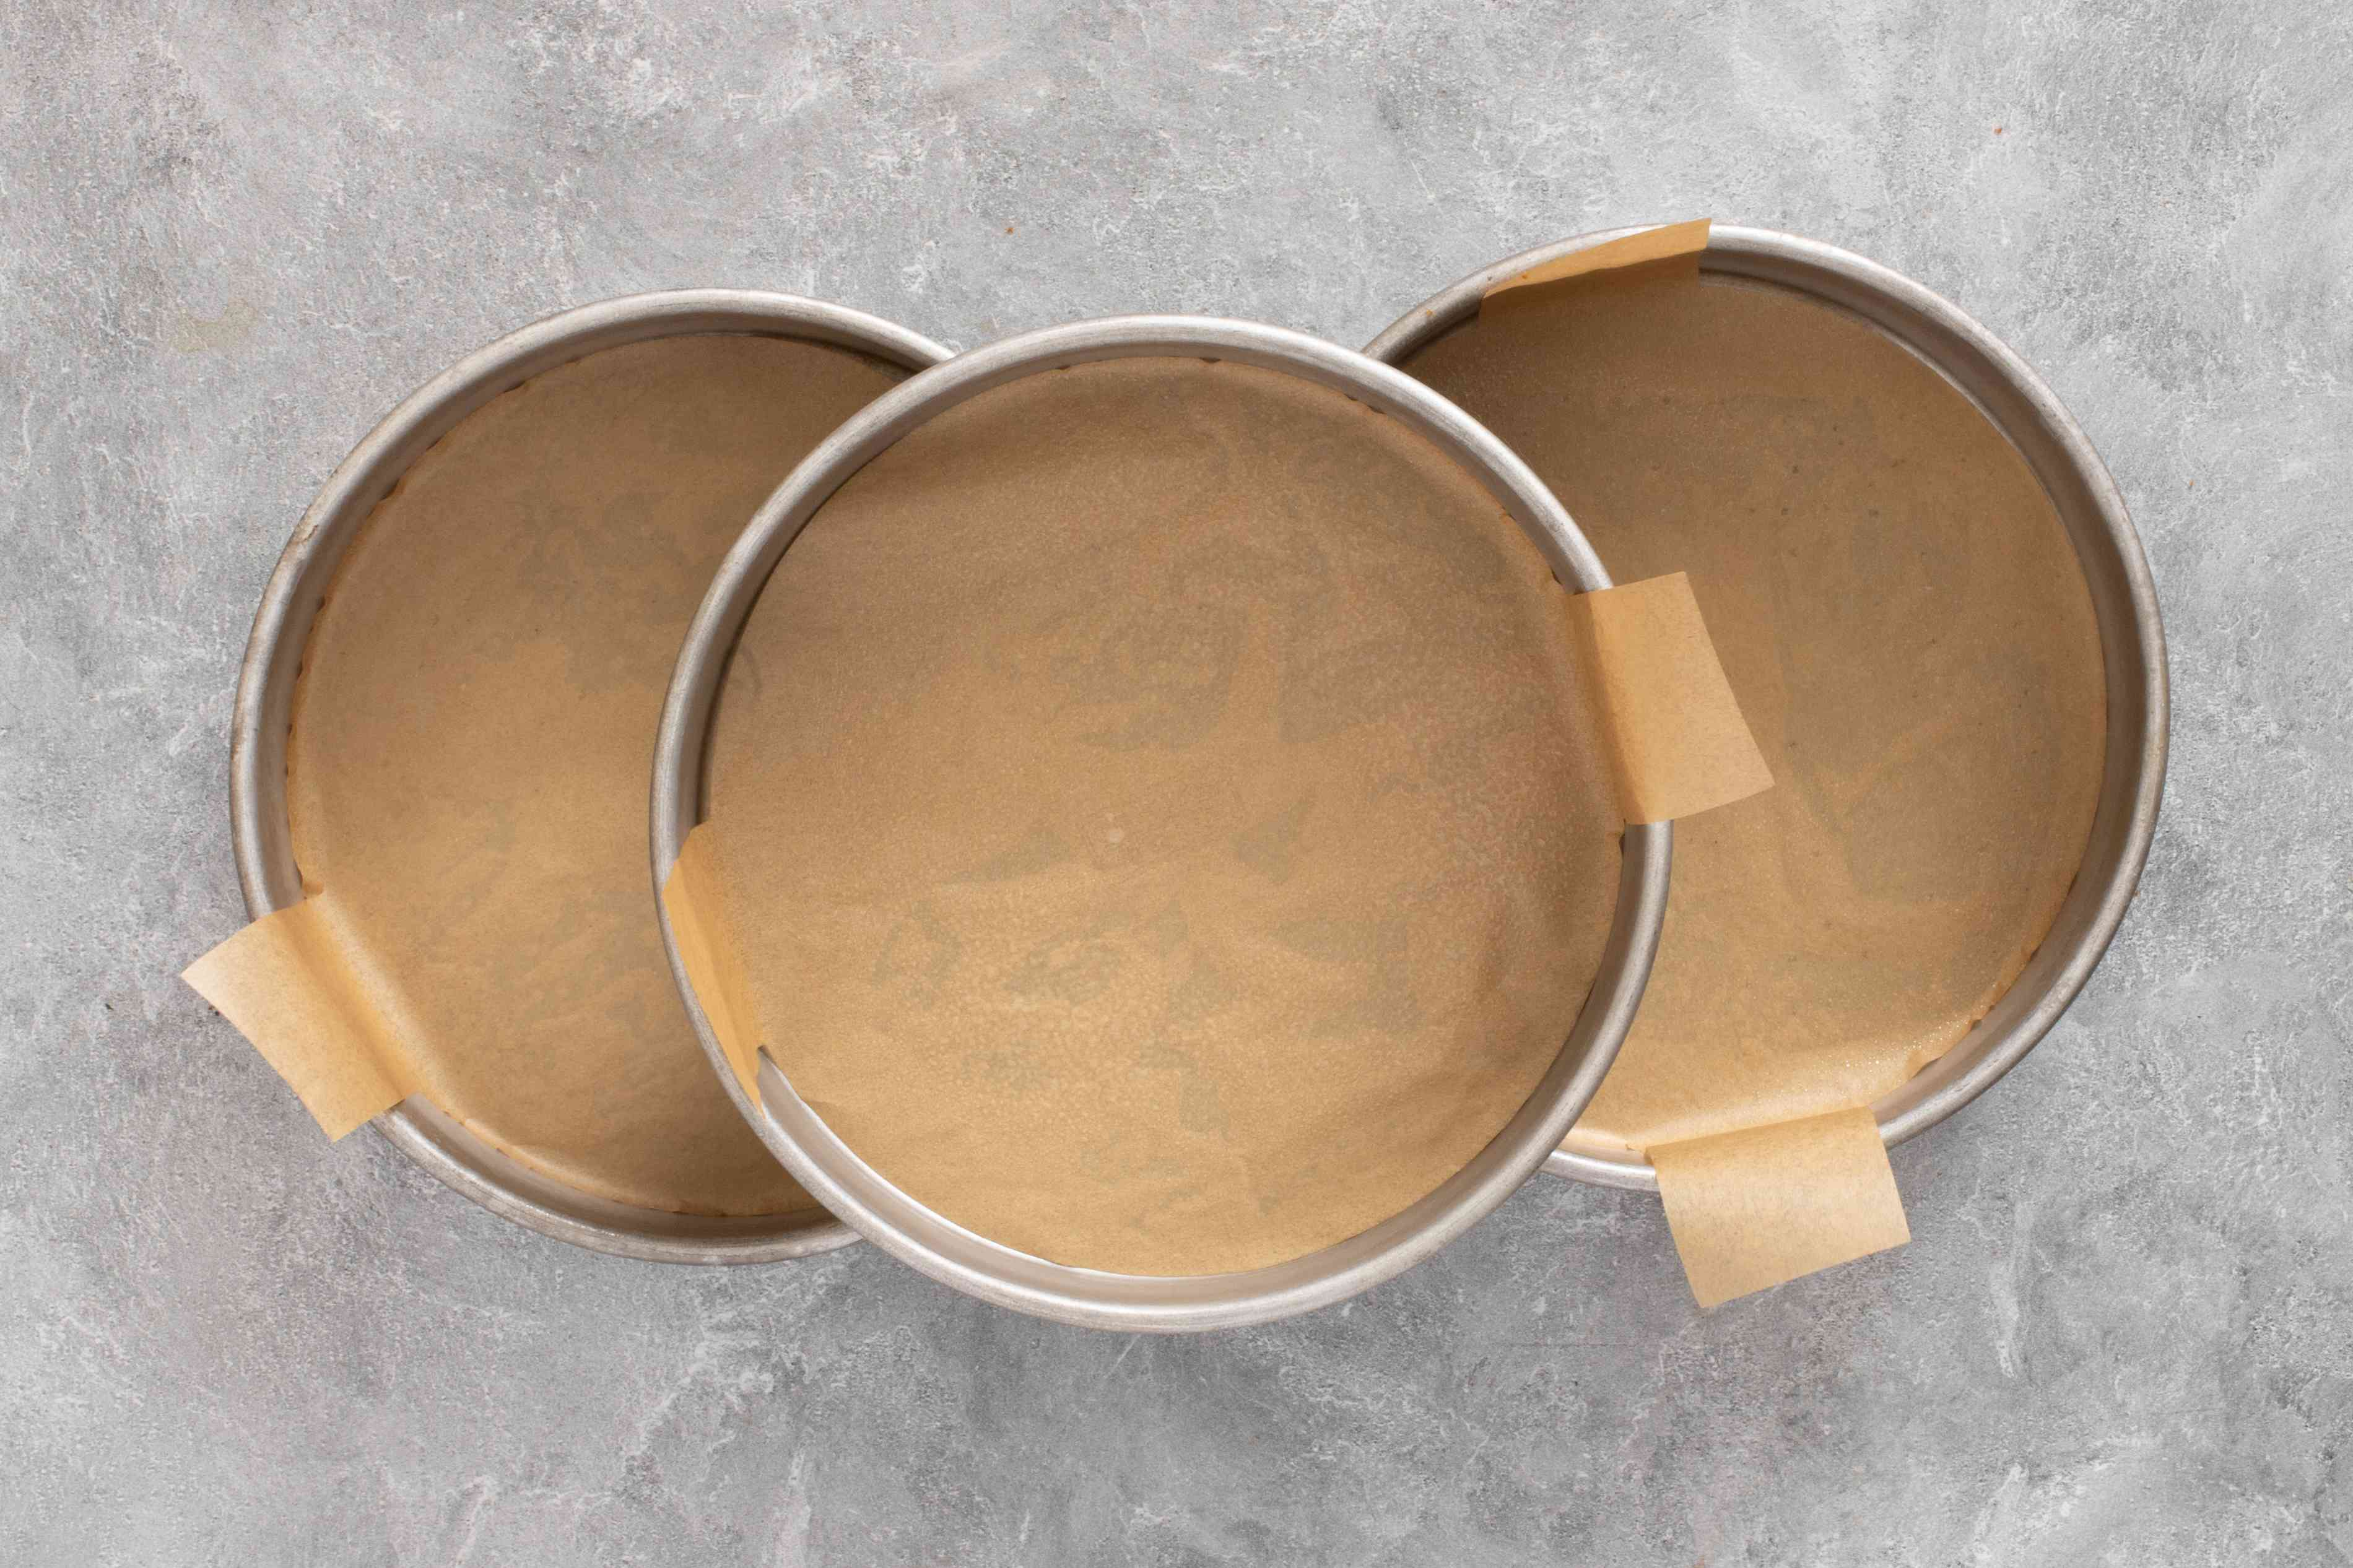 cake pans lined with parchment paper